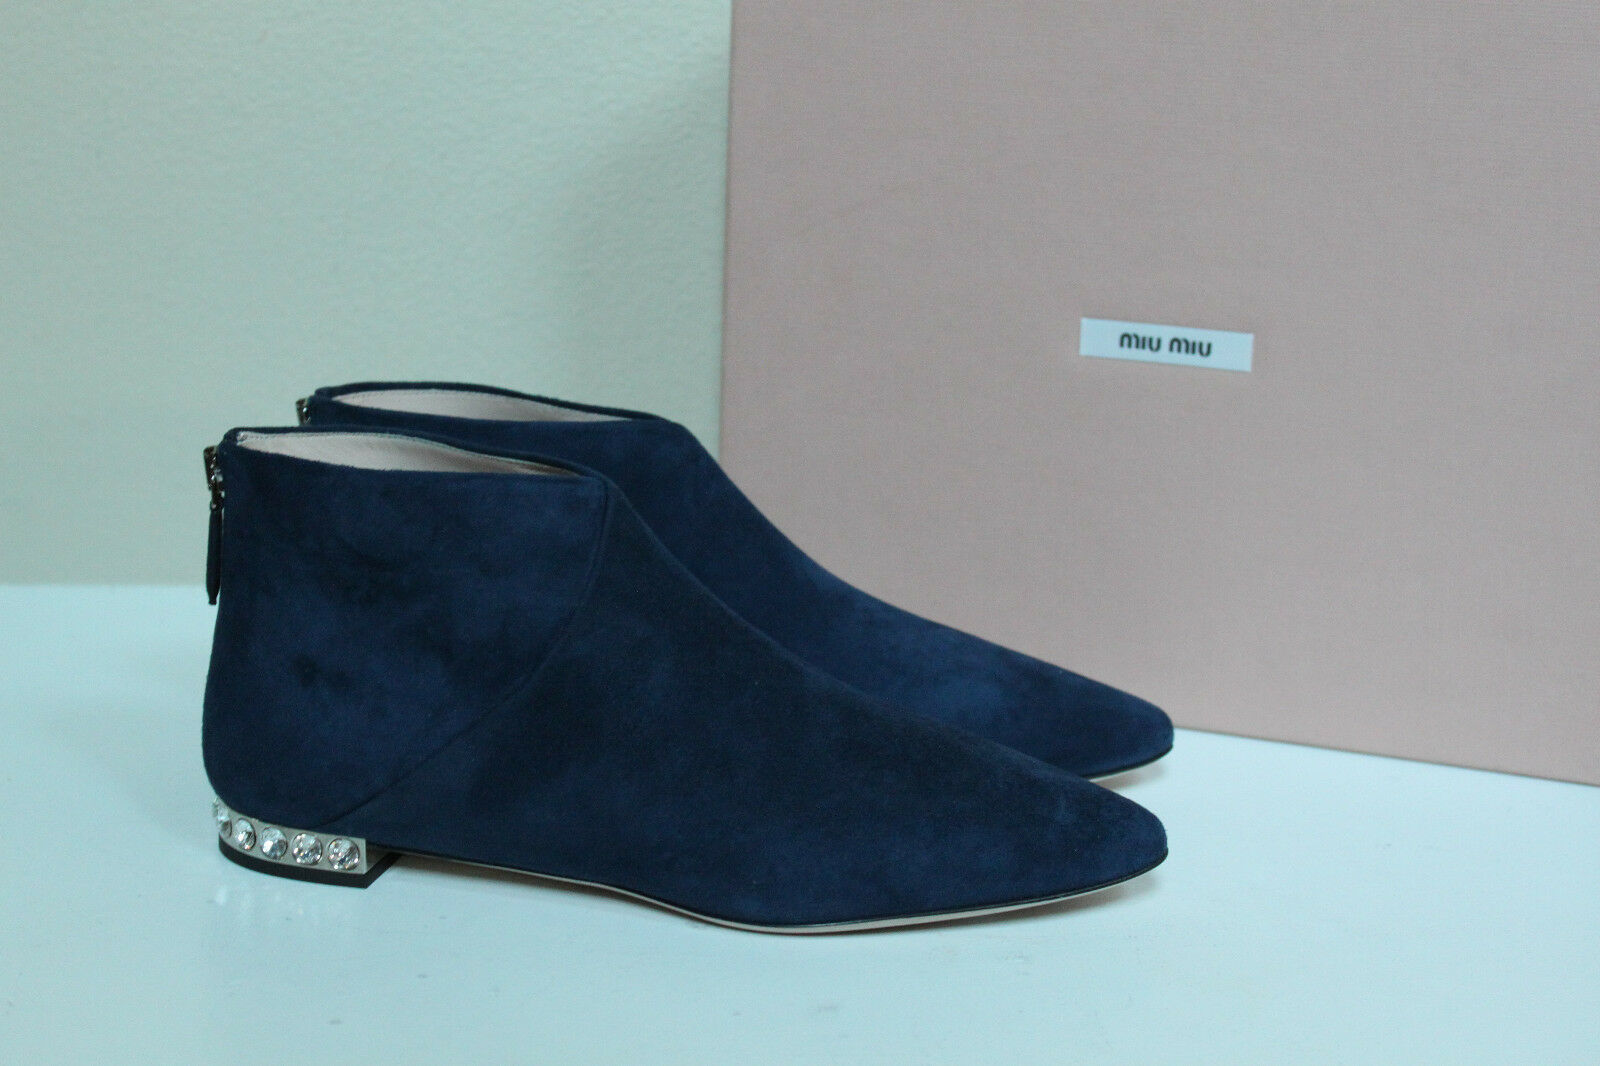 New Miu Miu Blue Suede Pointed toe Crystal Heel Flat Ankle Boot Shoes 6.5 / 36.5